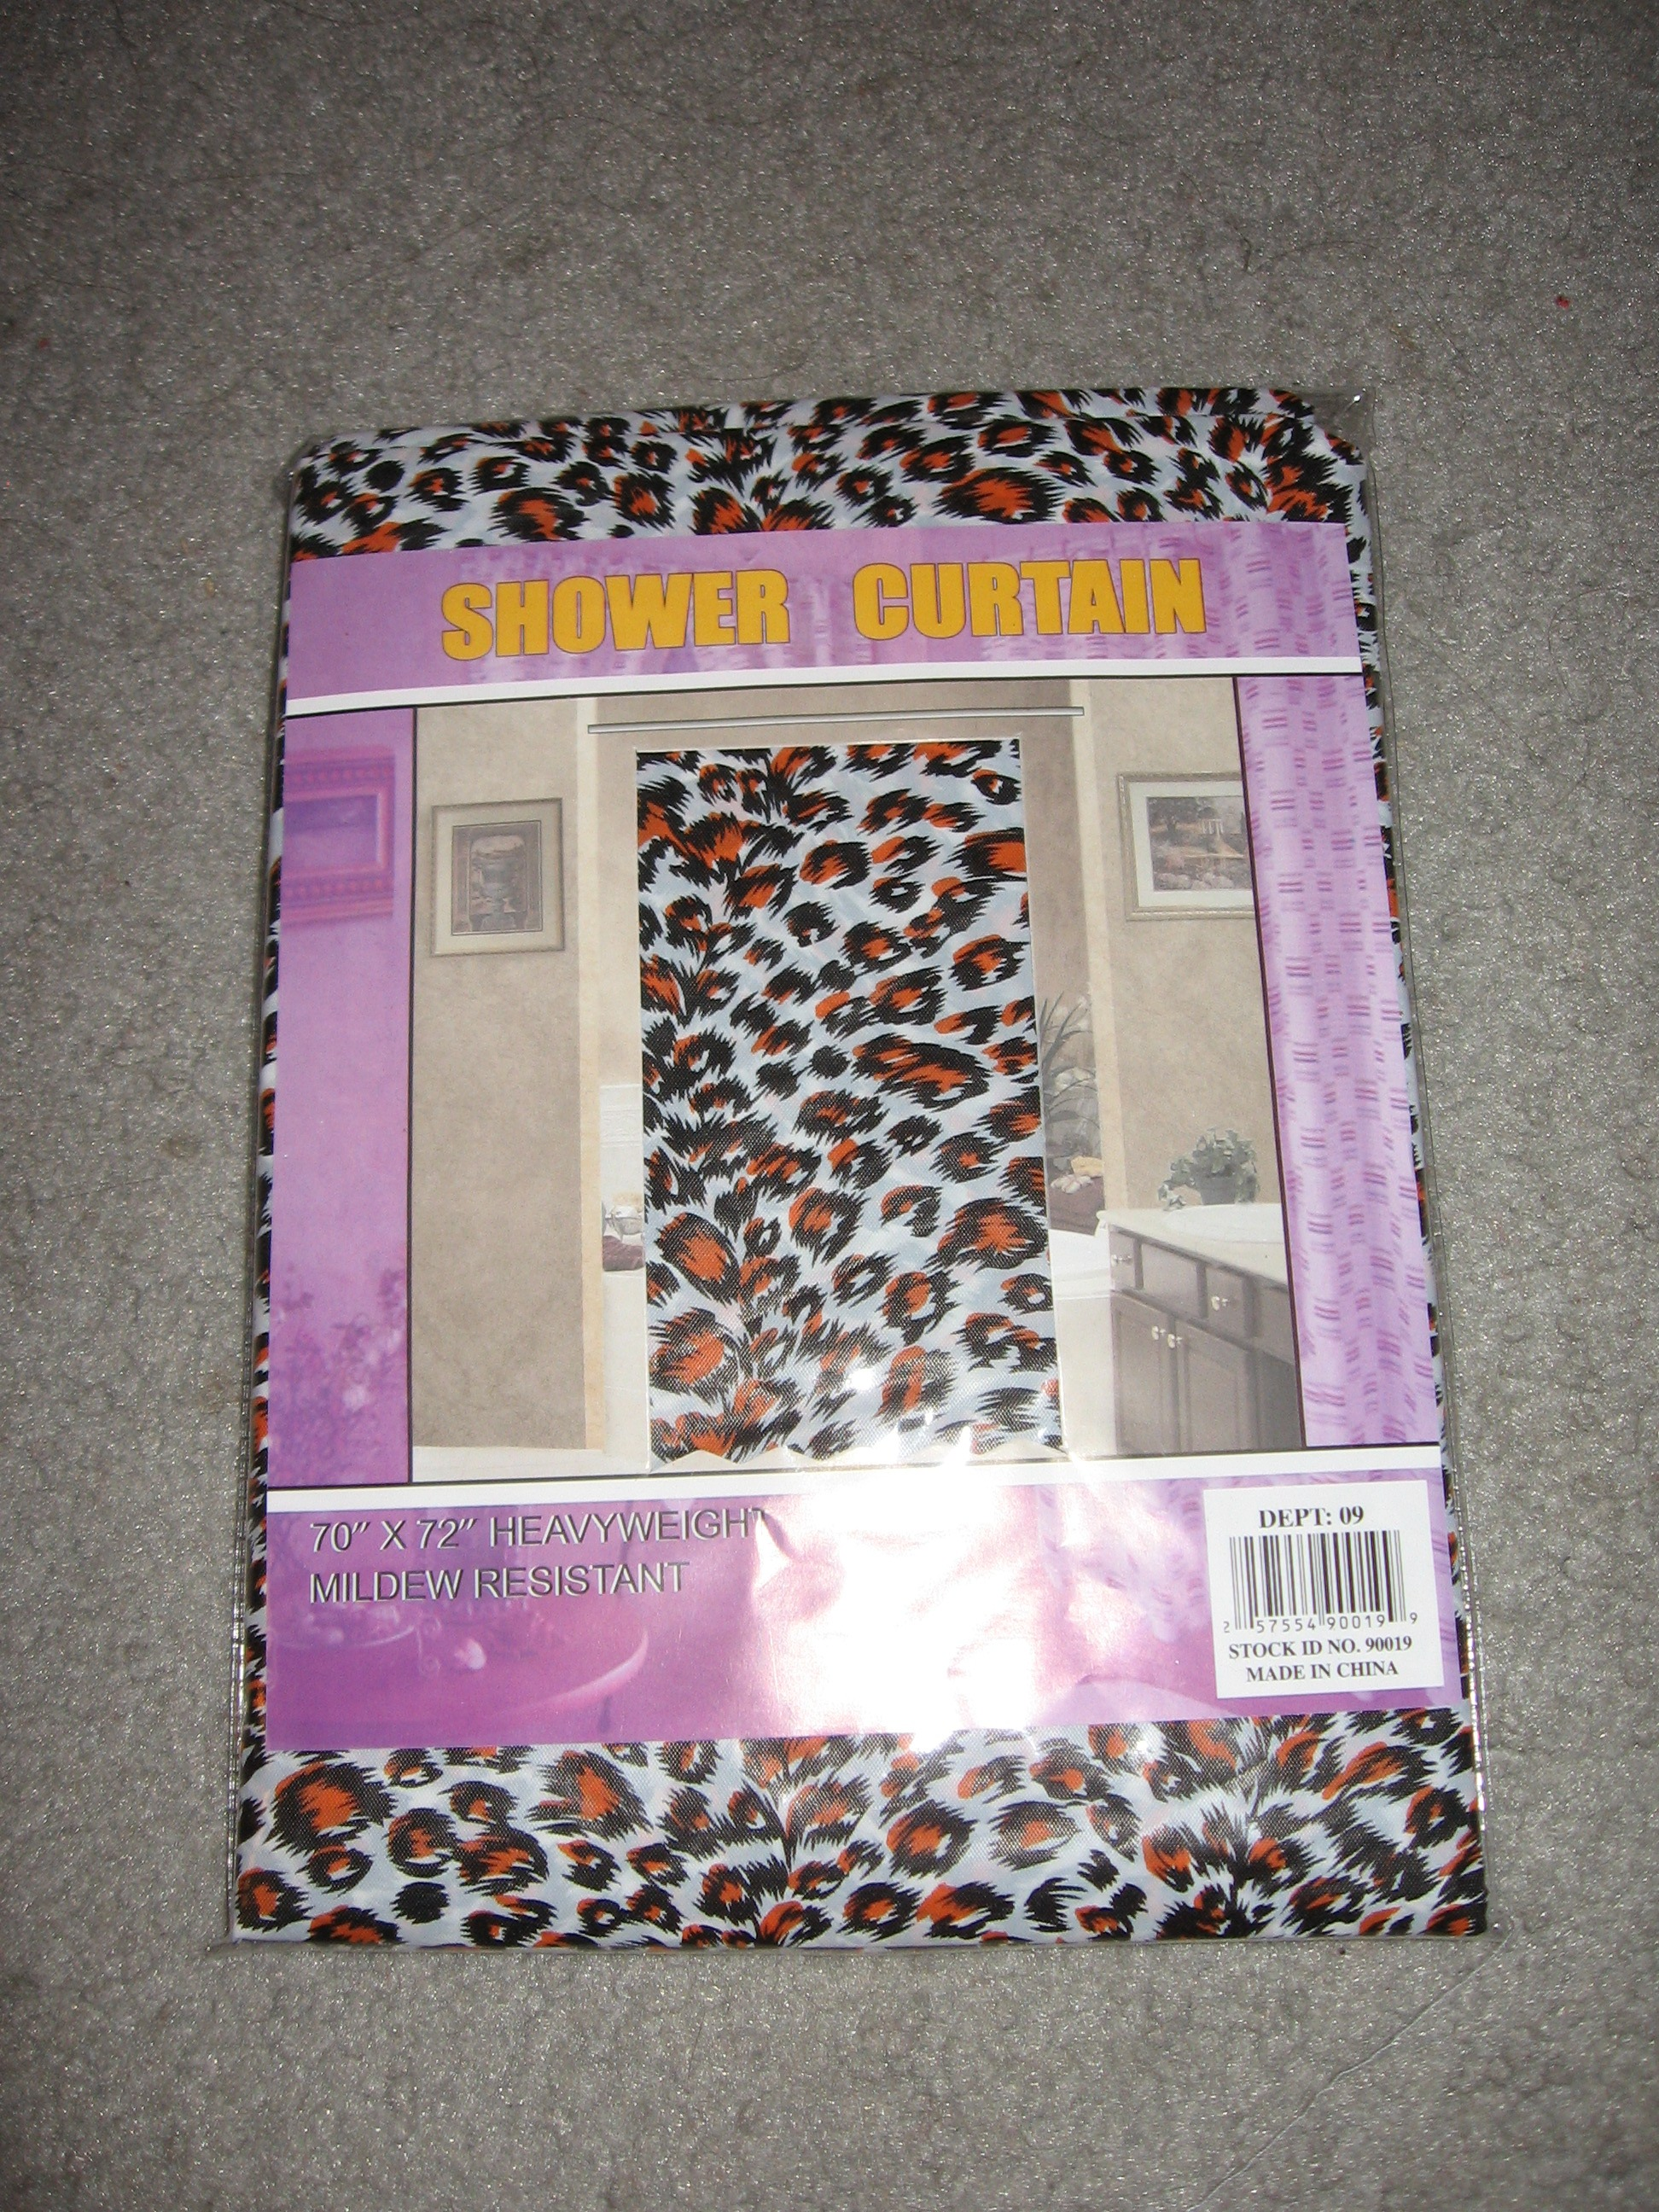 Pink cheetah print curtains - Safari Shower Curtains Animal Print Safari Fabric Animal Print Shower Curtain Compare Prices And